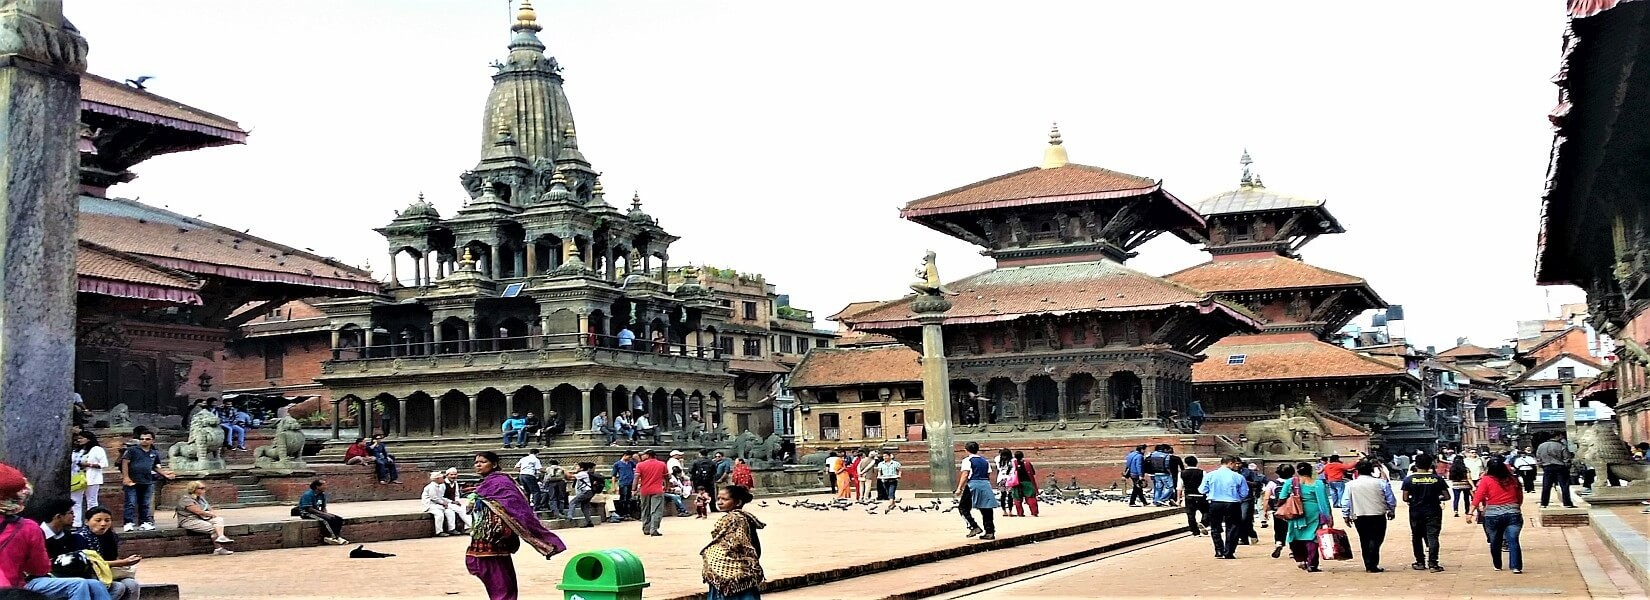 What To See In Patan Durbar Square